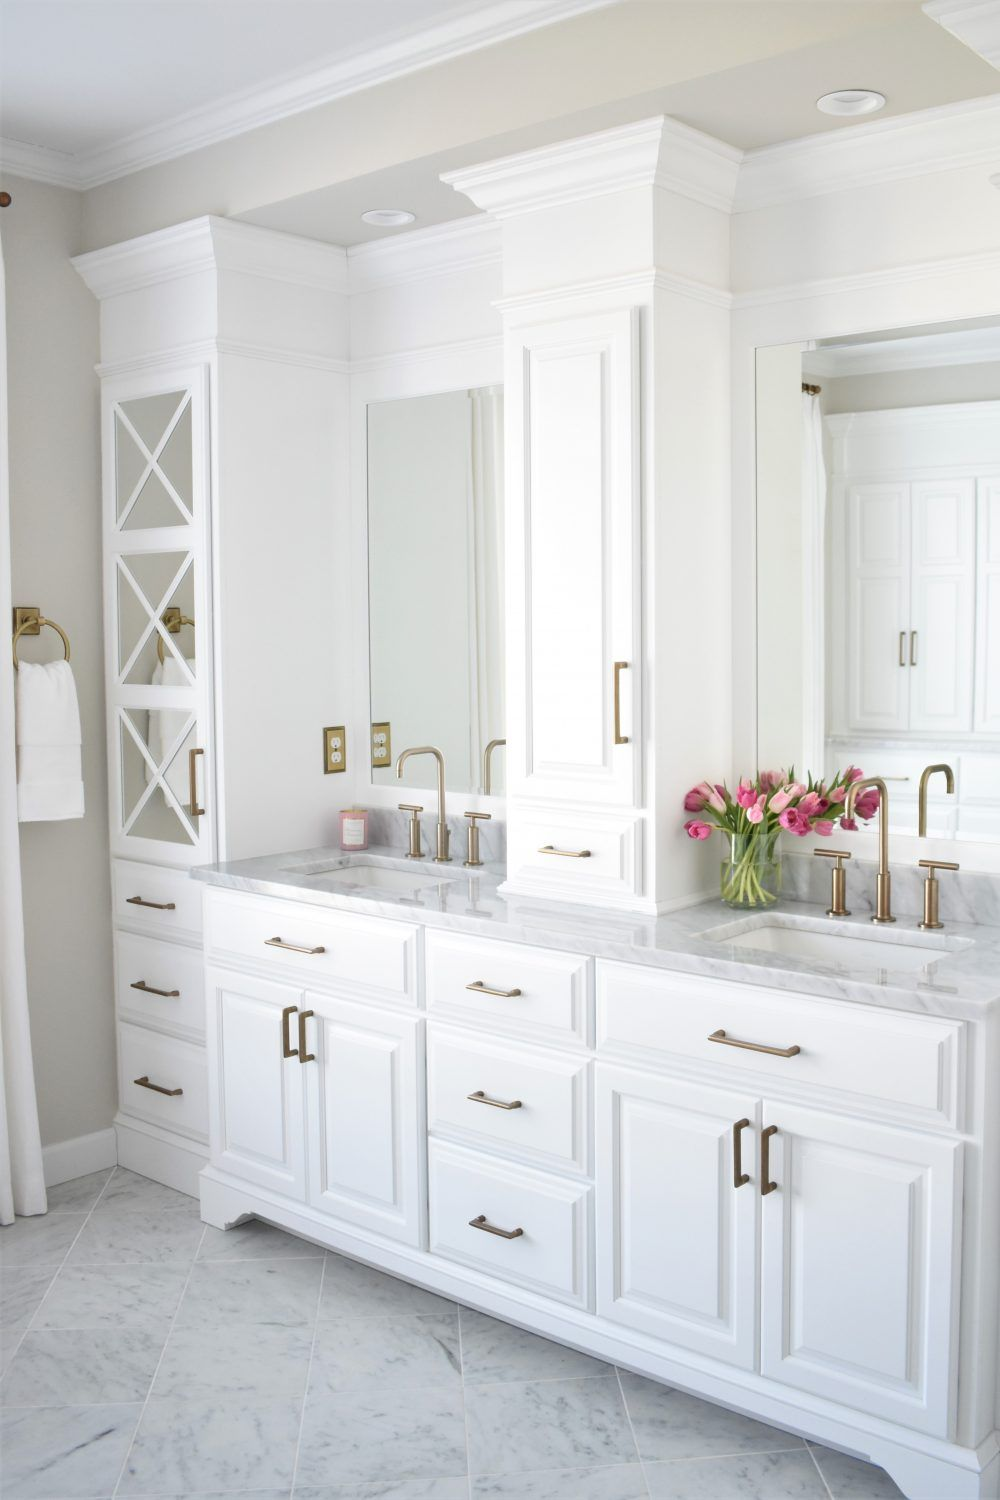 Double sink vanity with lots of storage | Kate ABT Design ...